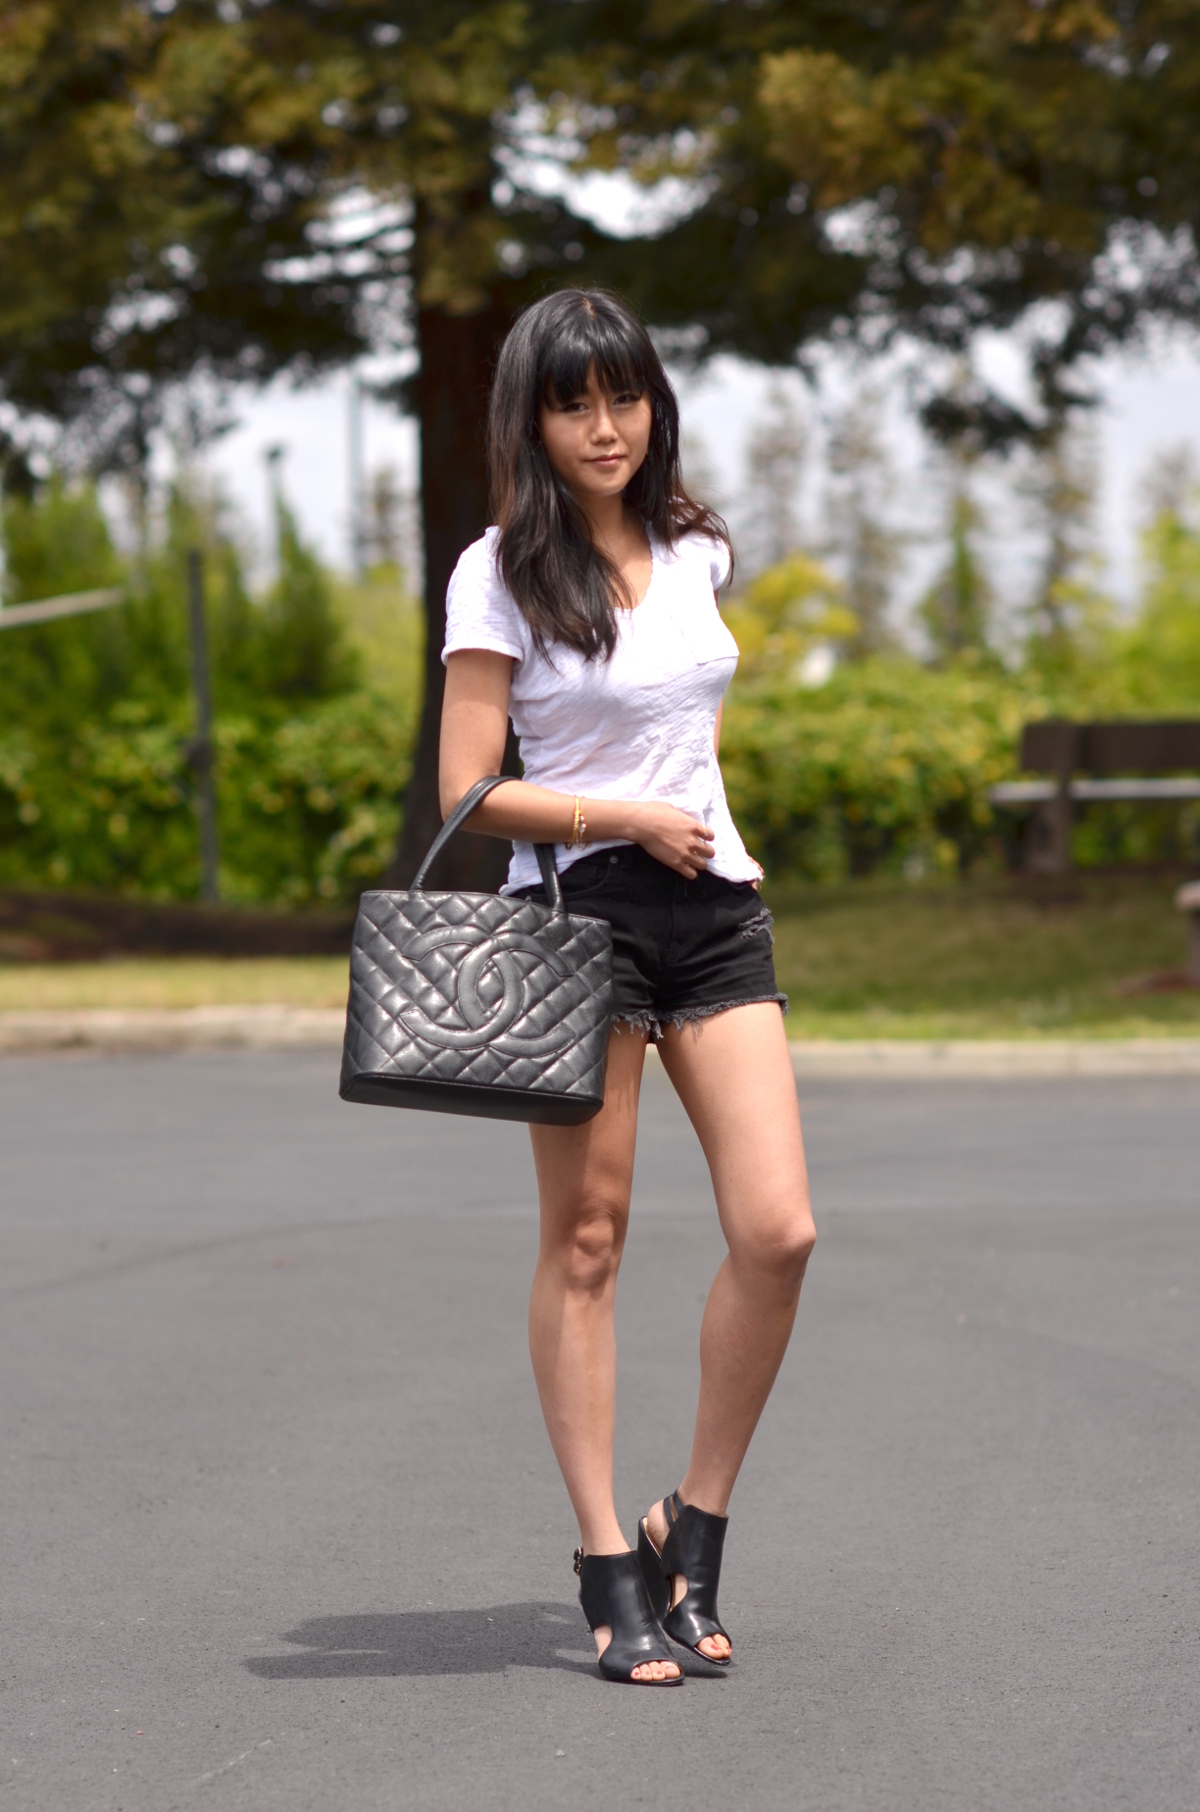 lauren and tote gallery medallion blog lamozu both conrad s chanel